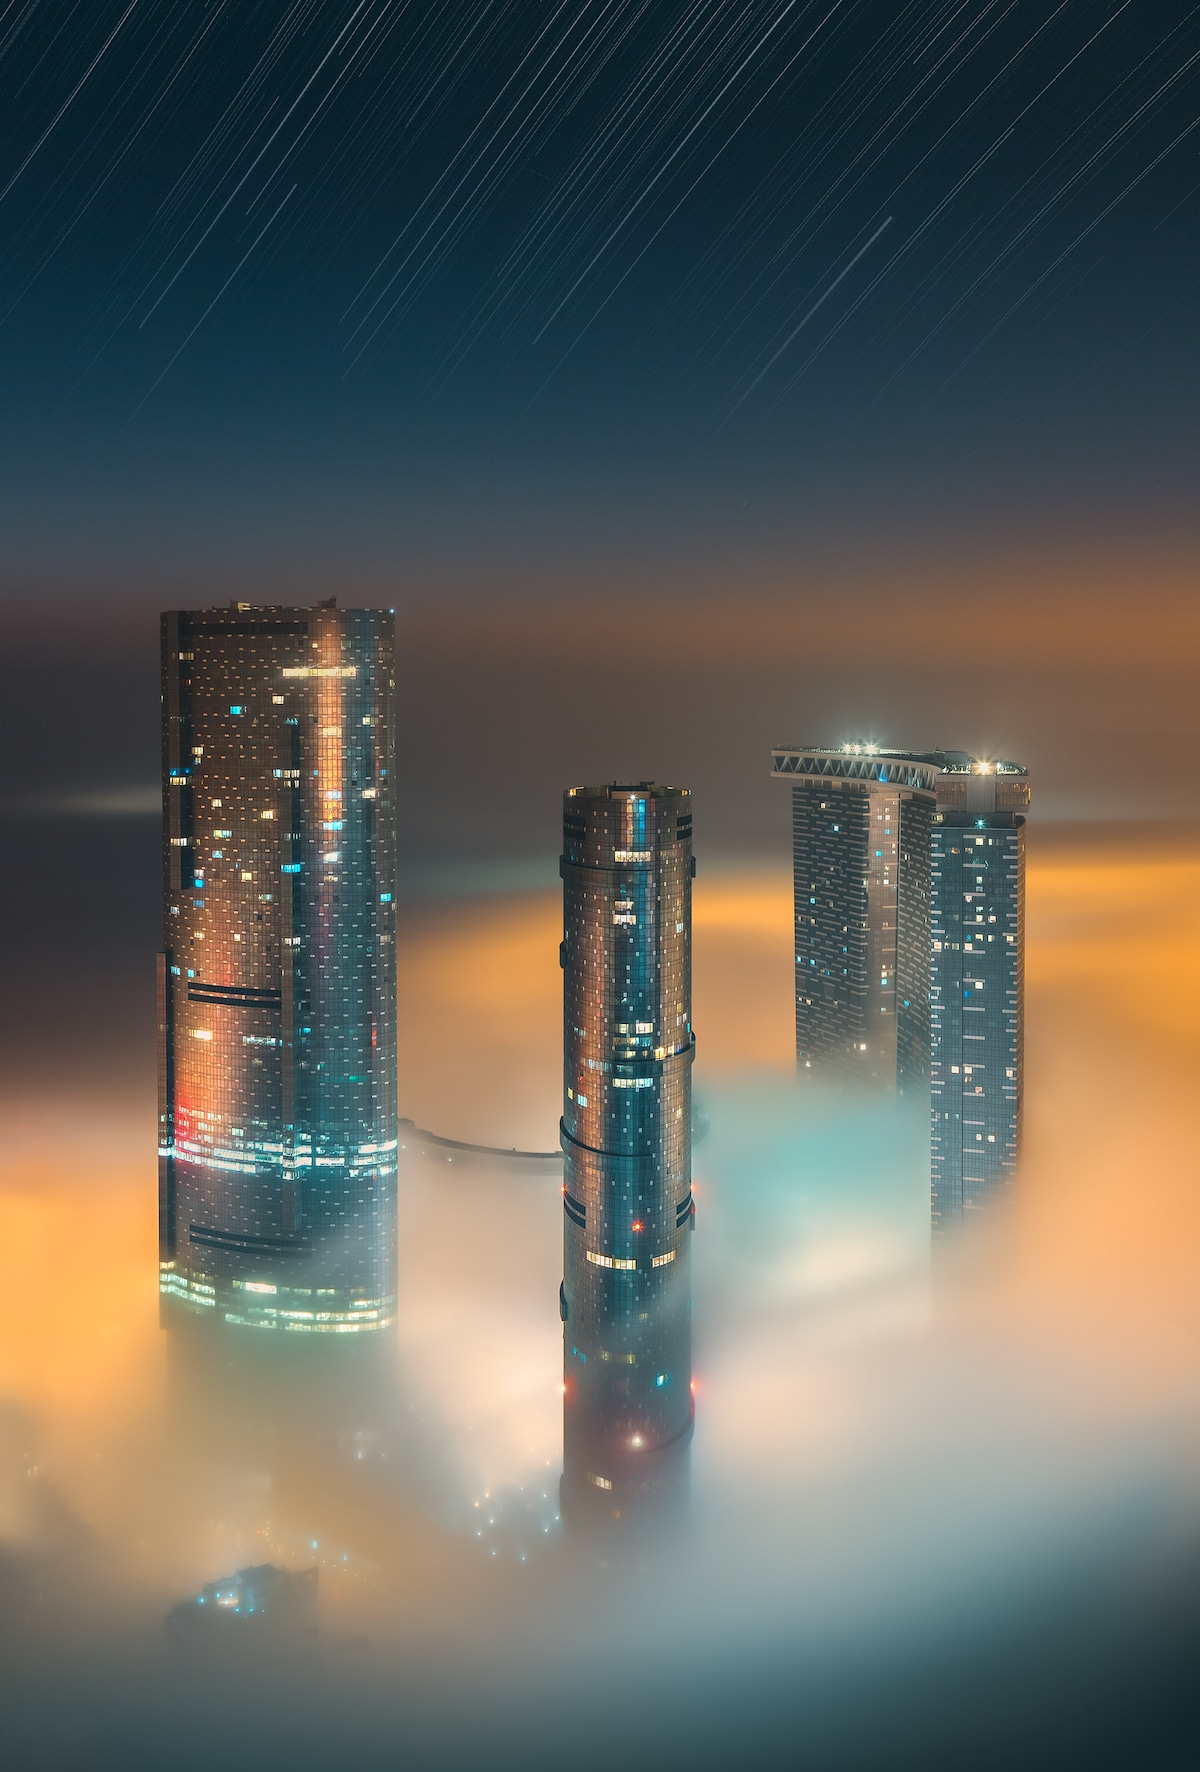 Architectural Photos of Abu Dhabi by Khalid Al Hammadi